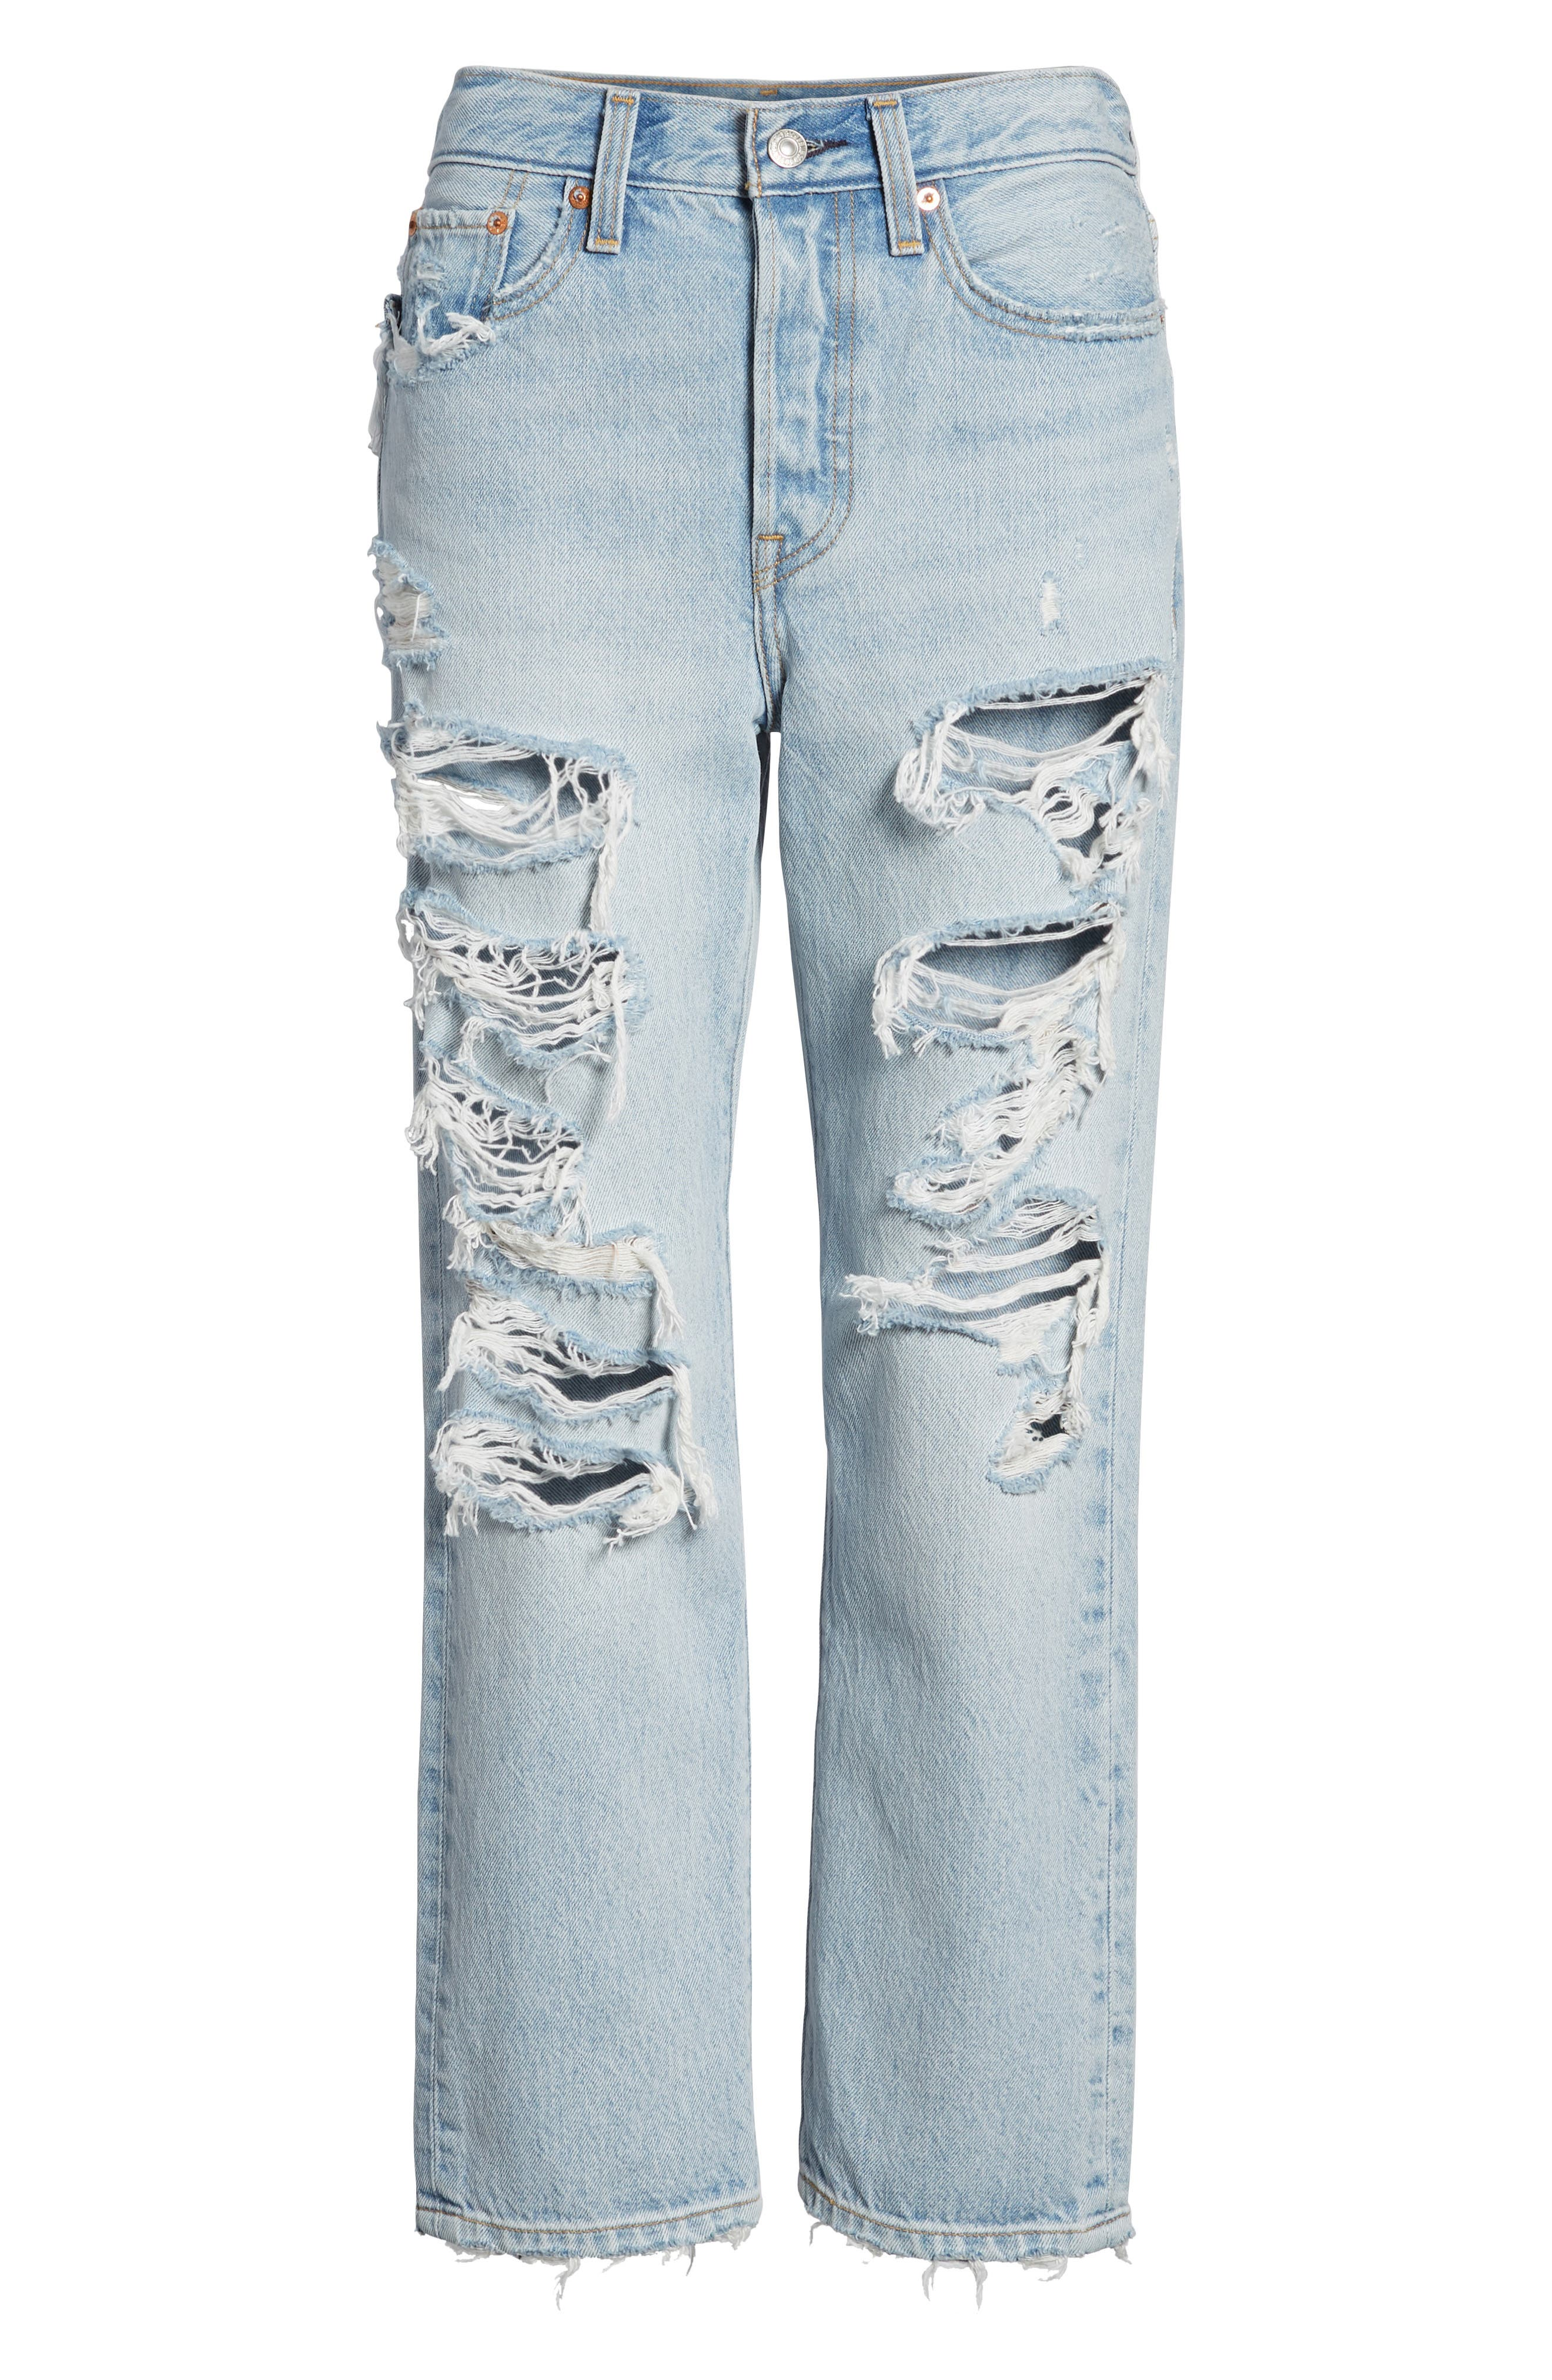 Wedgie High Waist Ripped Straight Jeans,                             Alternate thumbnail 7, color,                             Light Blue 1